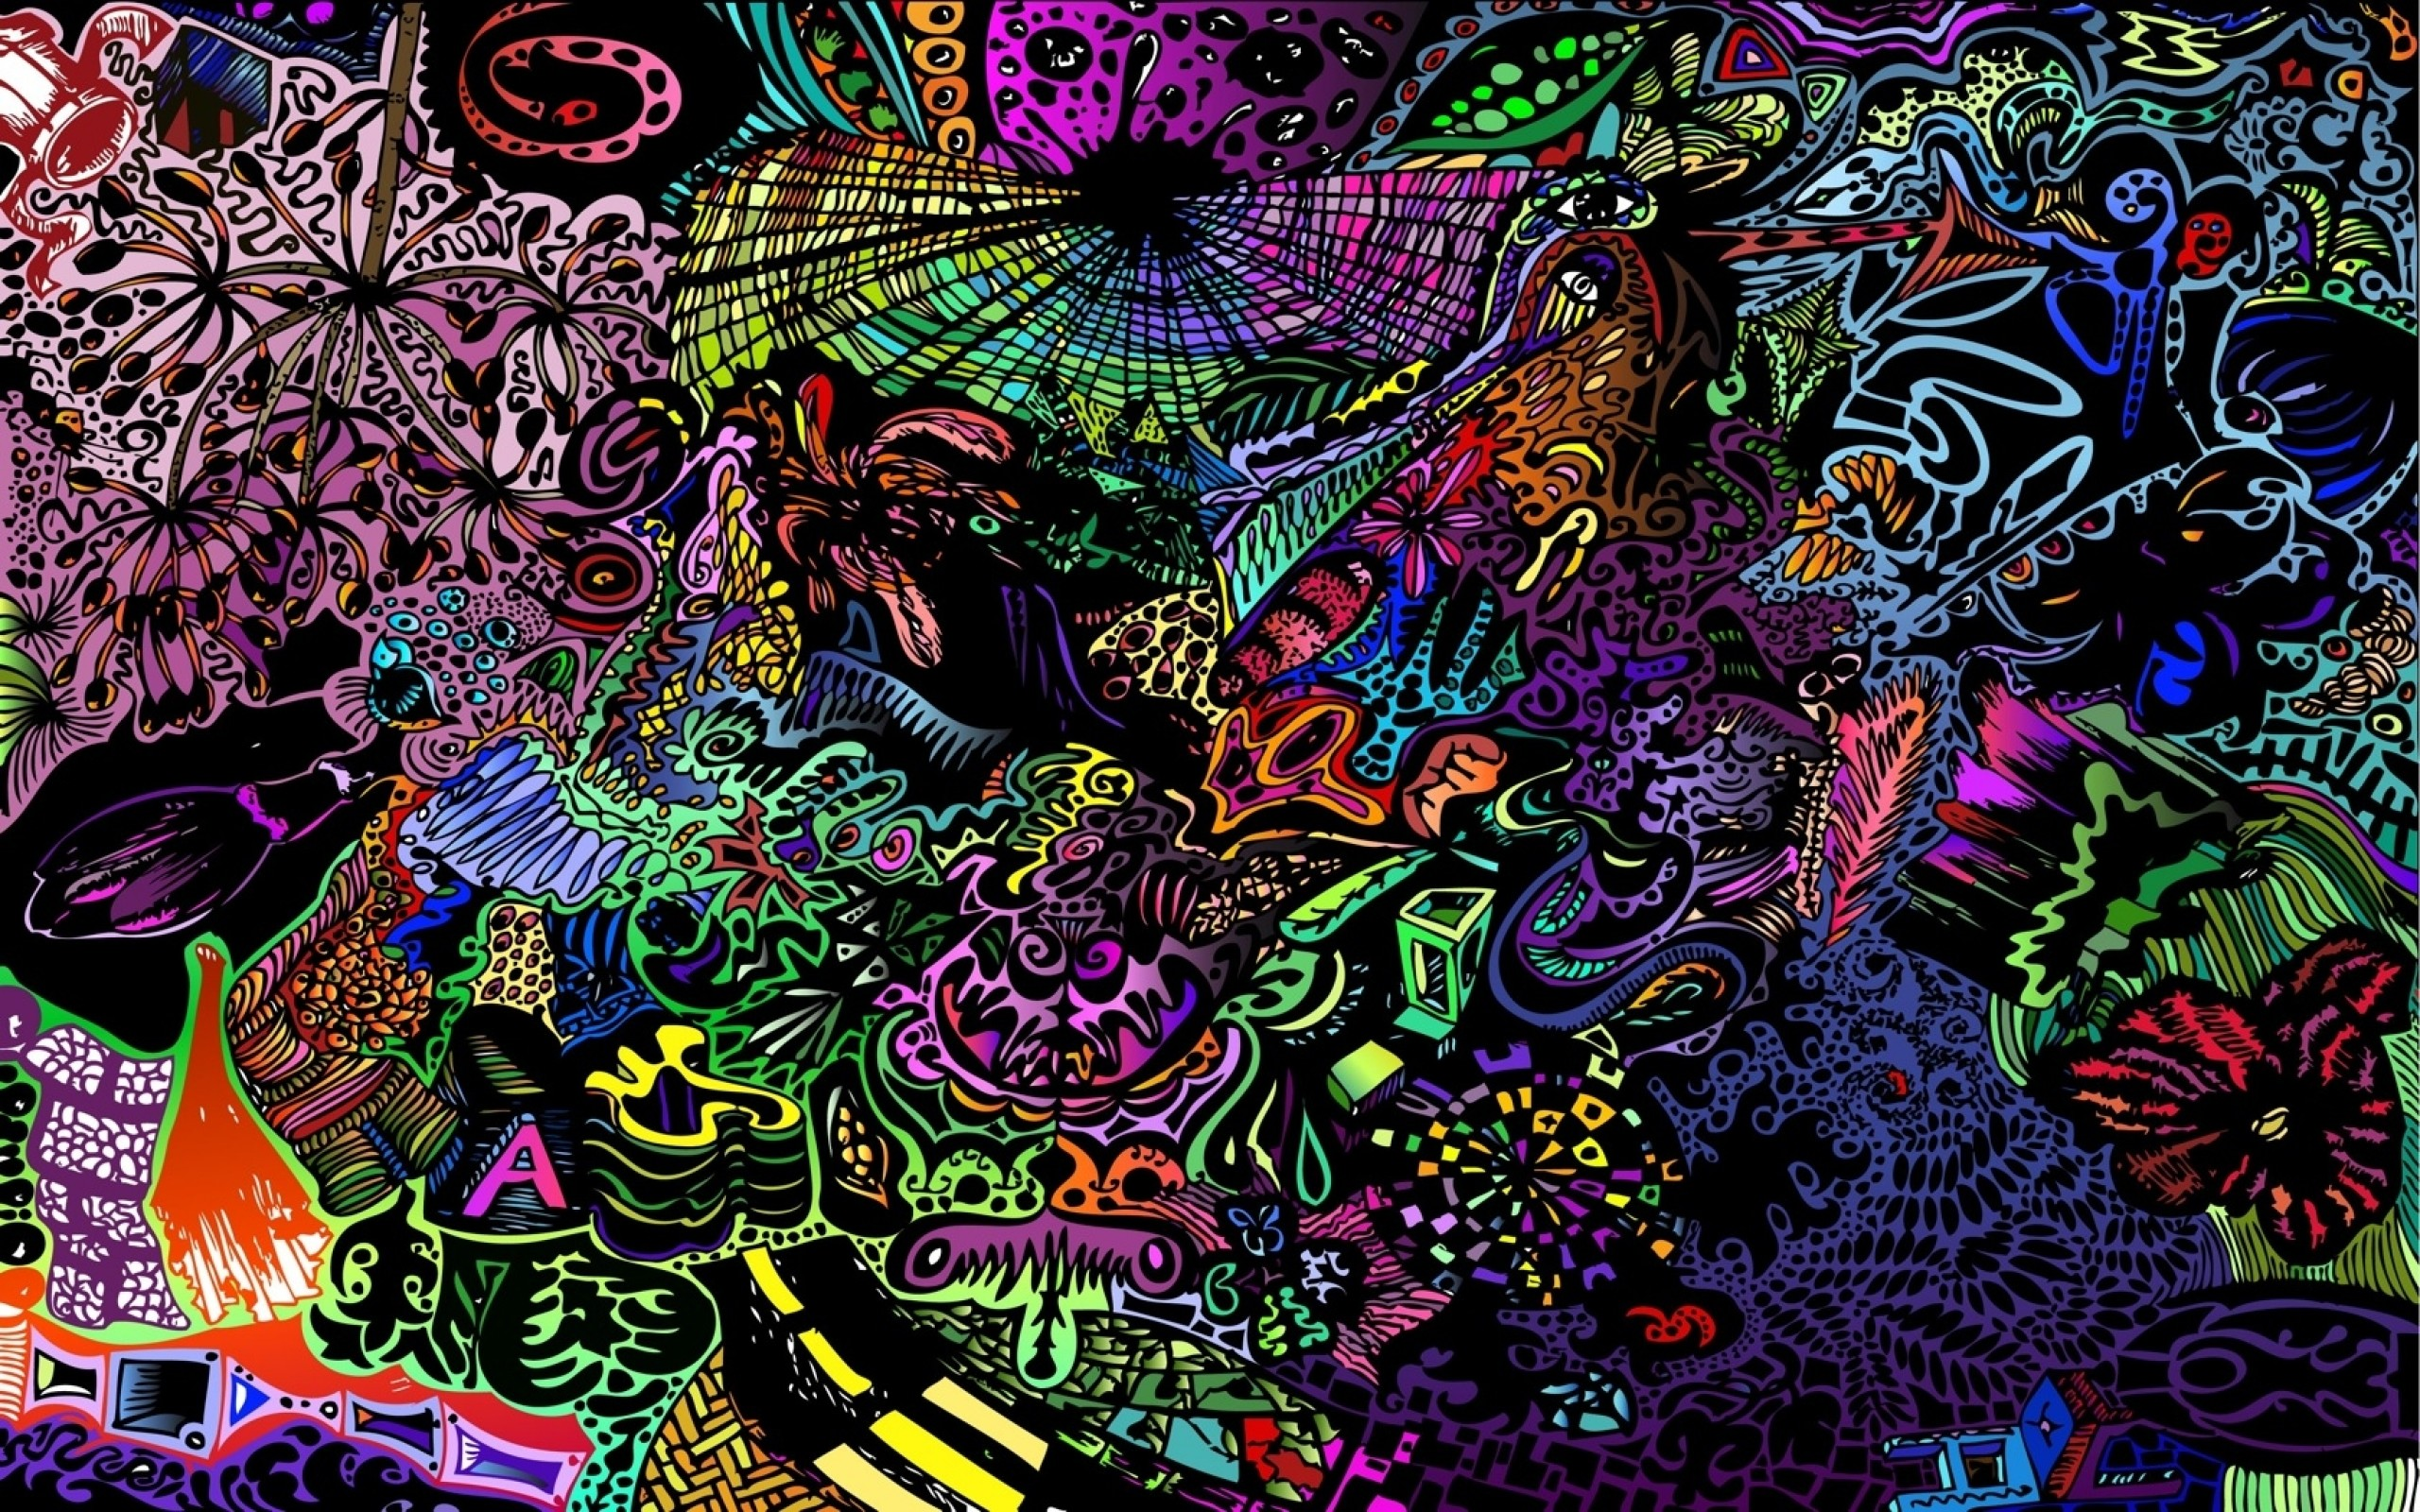 treanding trippy wallpaper HD